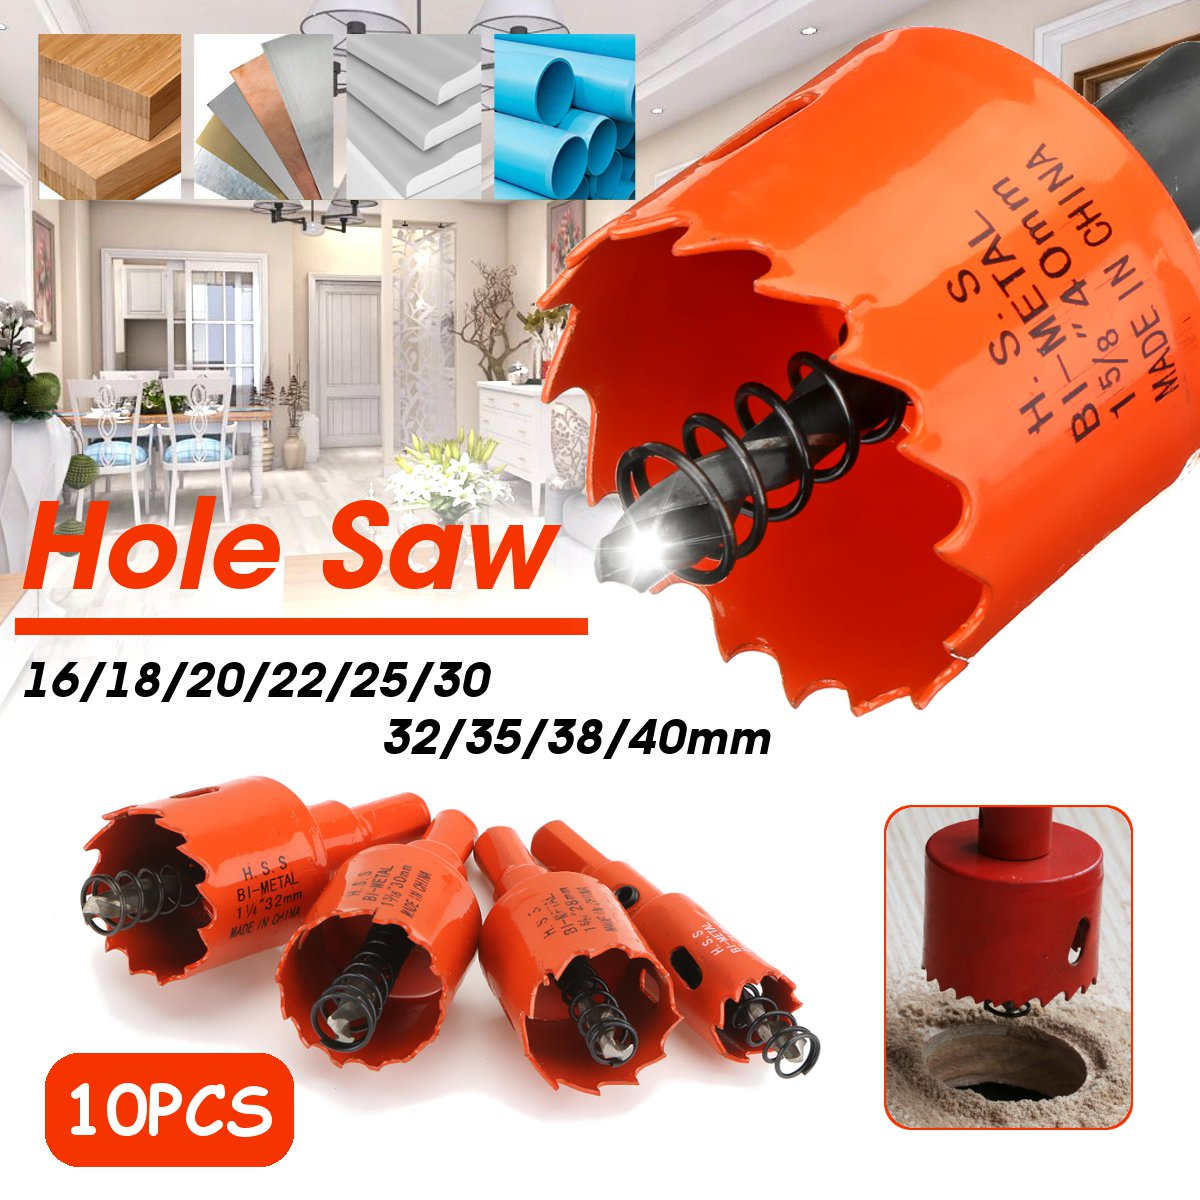 16-200mm HSS Bi-Metal Wood Hole Saw Cutter Tooth Cutter Drill Bit For Woodworking DIY Wood Cutter Drill Bit Set PVC Plastic